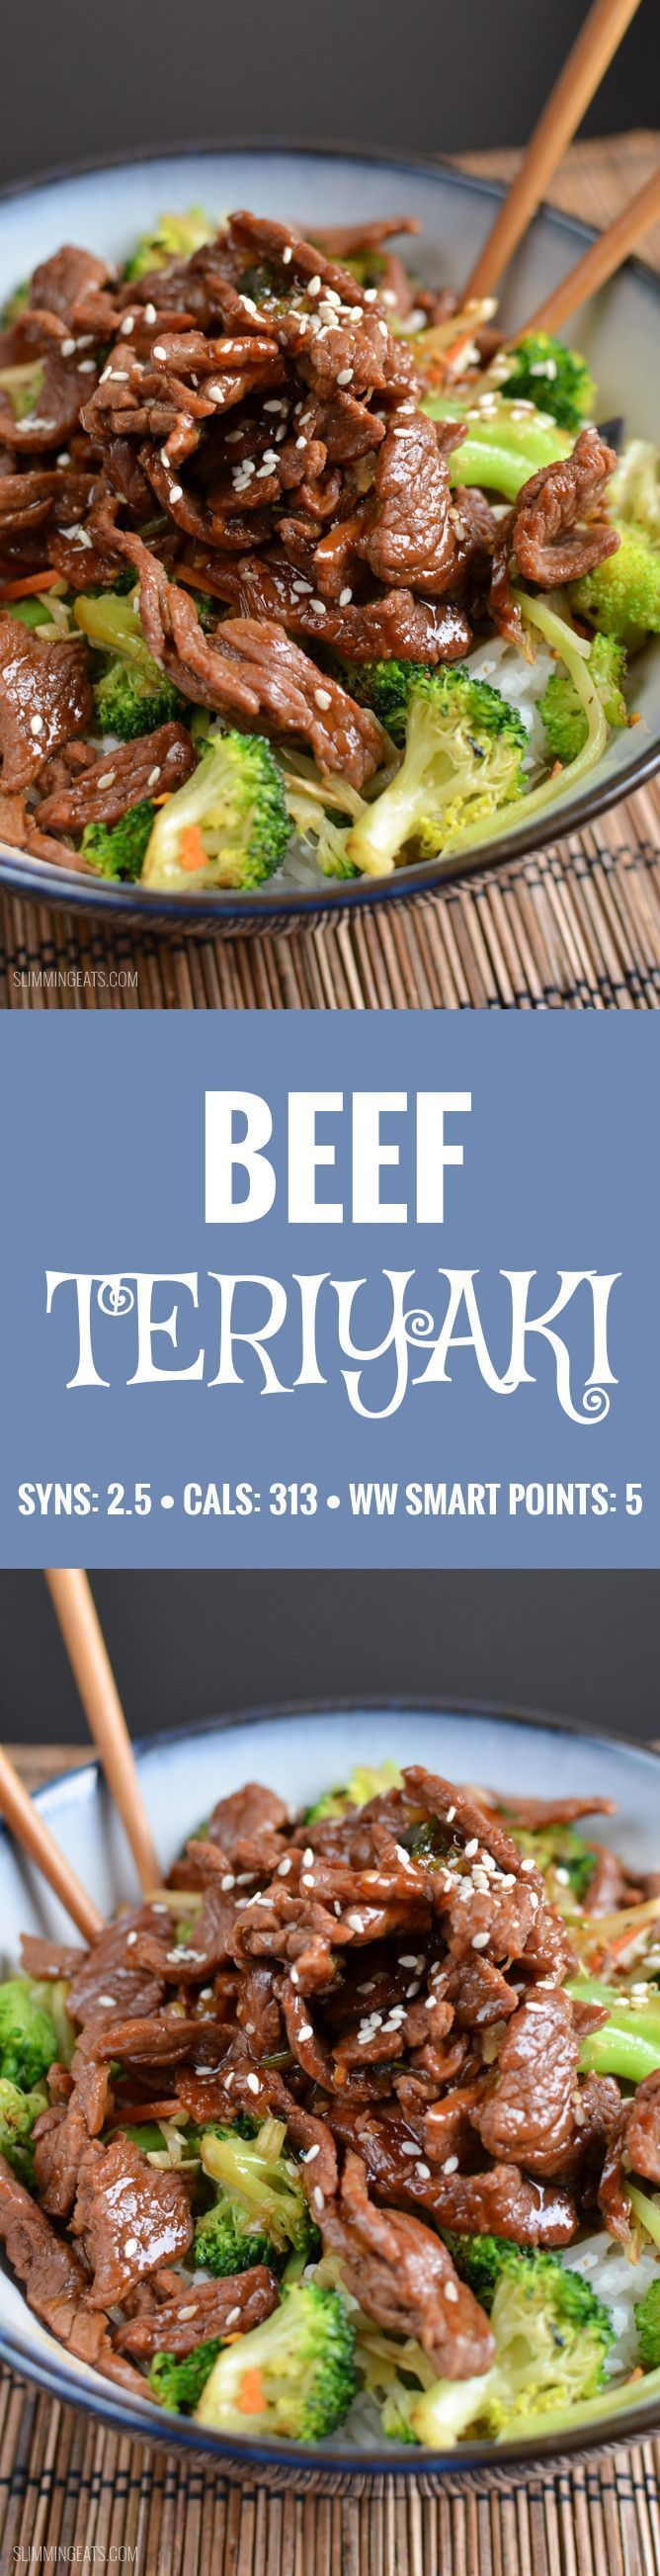 https://paleo-diet-menu.blogspot.com/ #paleoblog Slimming Eats Teriyaki Beef - gluten free, dairy free, Paleo, Slimming World (SP) and Weight Watchers friendly